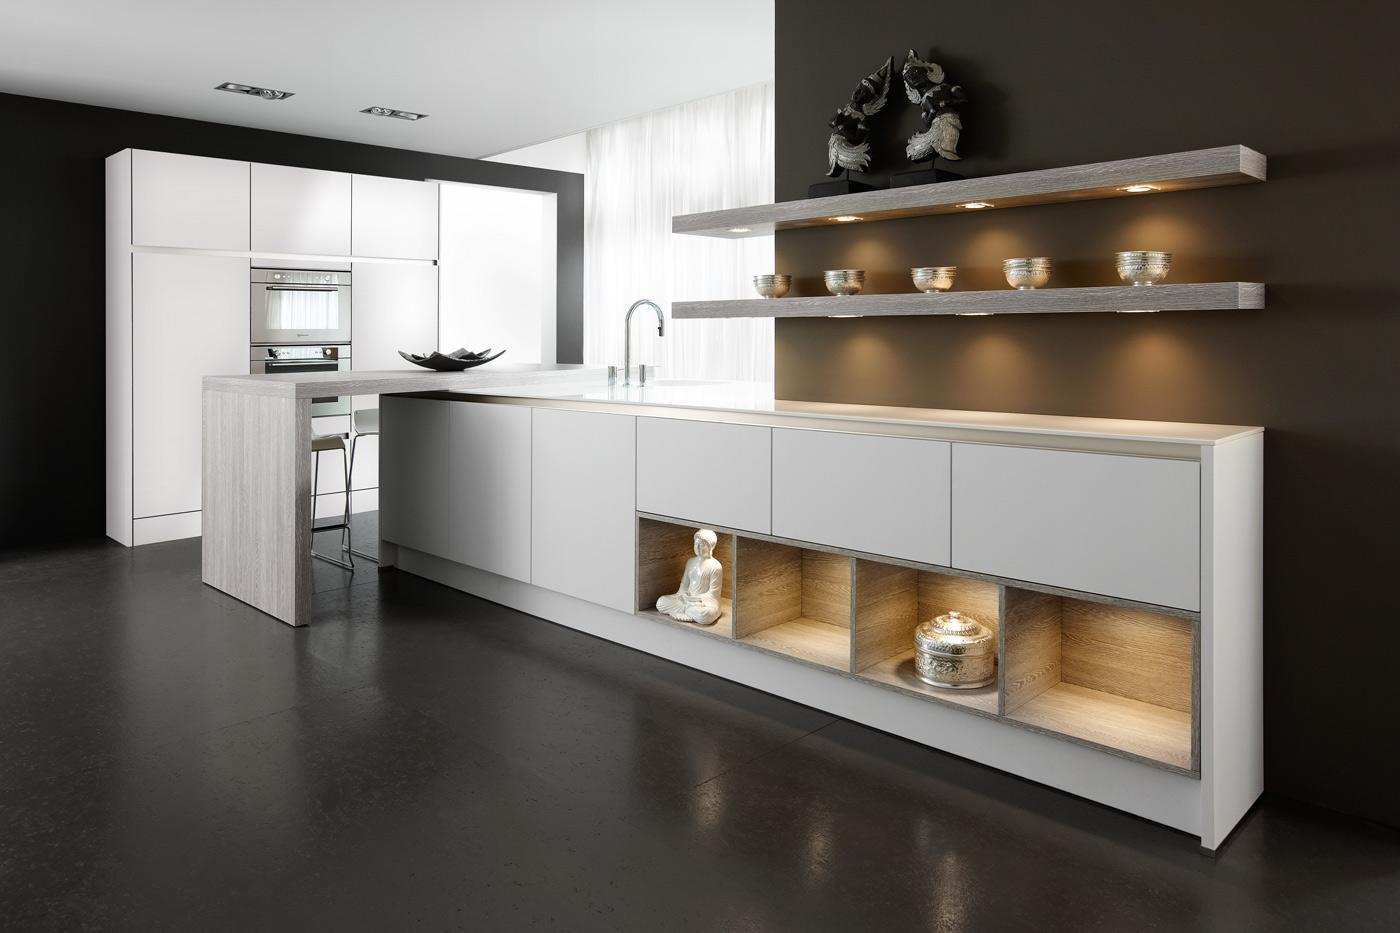 Handleless kitchen GL5100 ICE